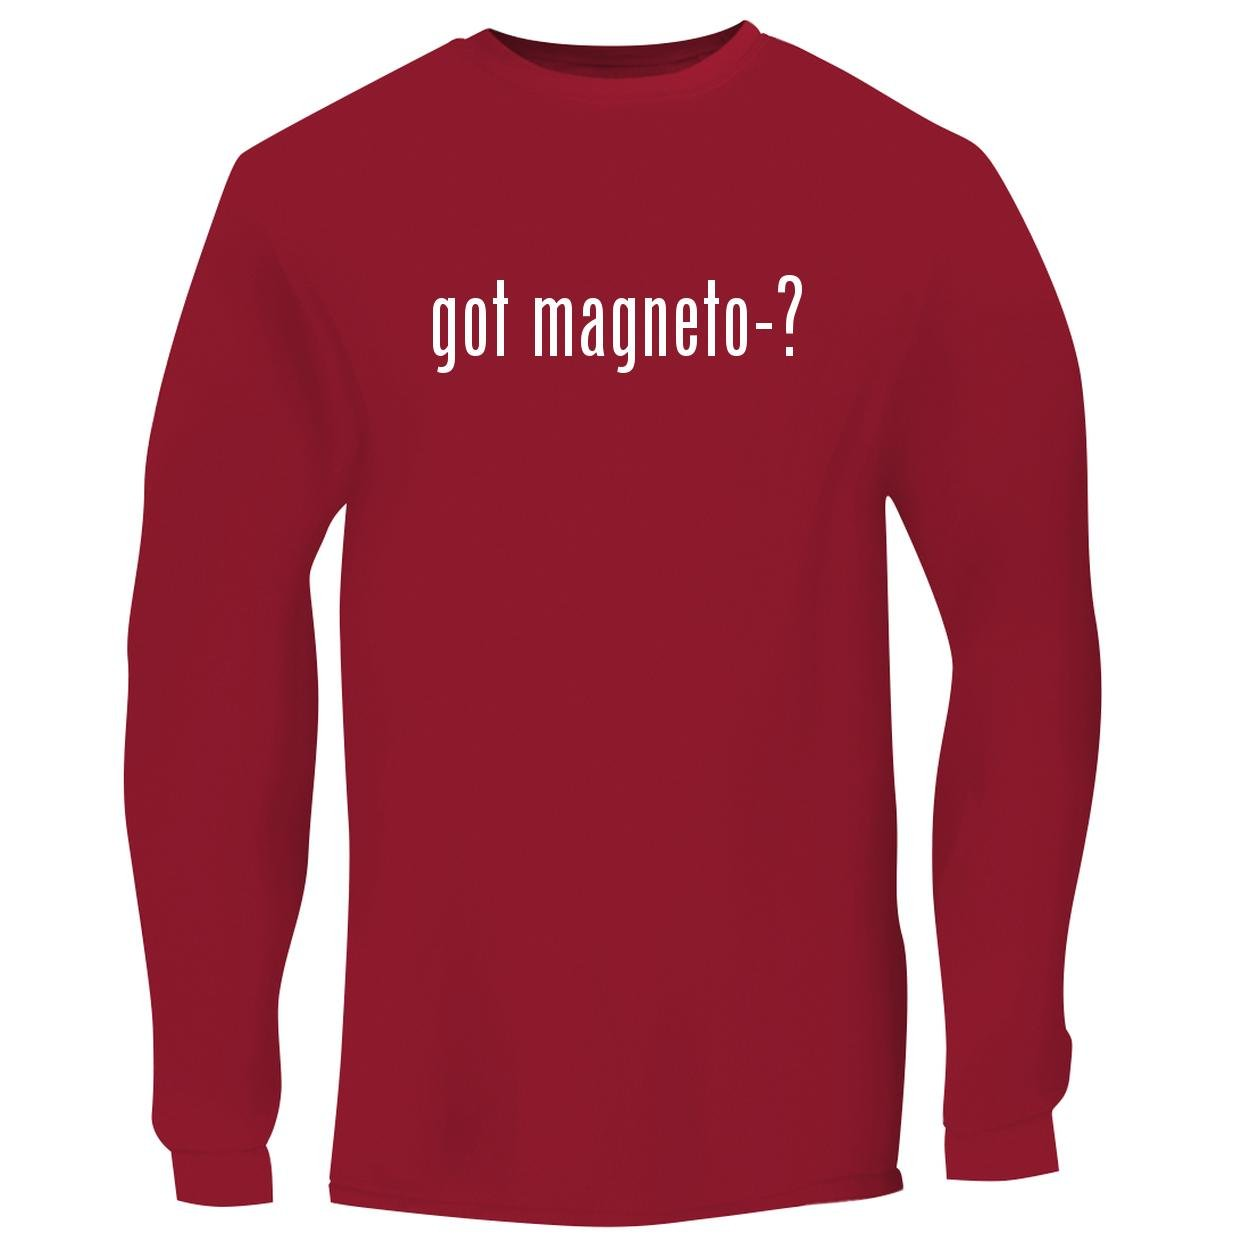 BH Cool Designs got Magneto-? - Men's Long Sleeve Graphic Tee, Red, Medium